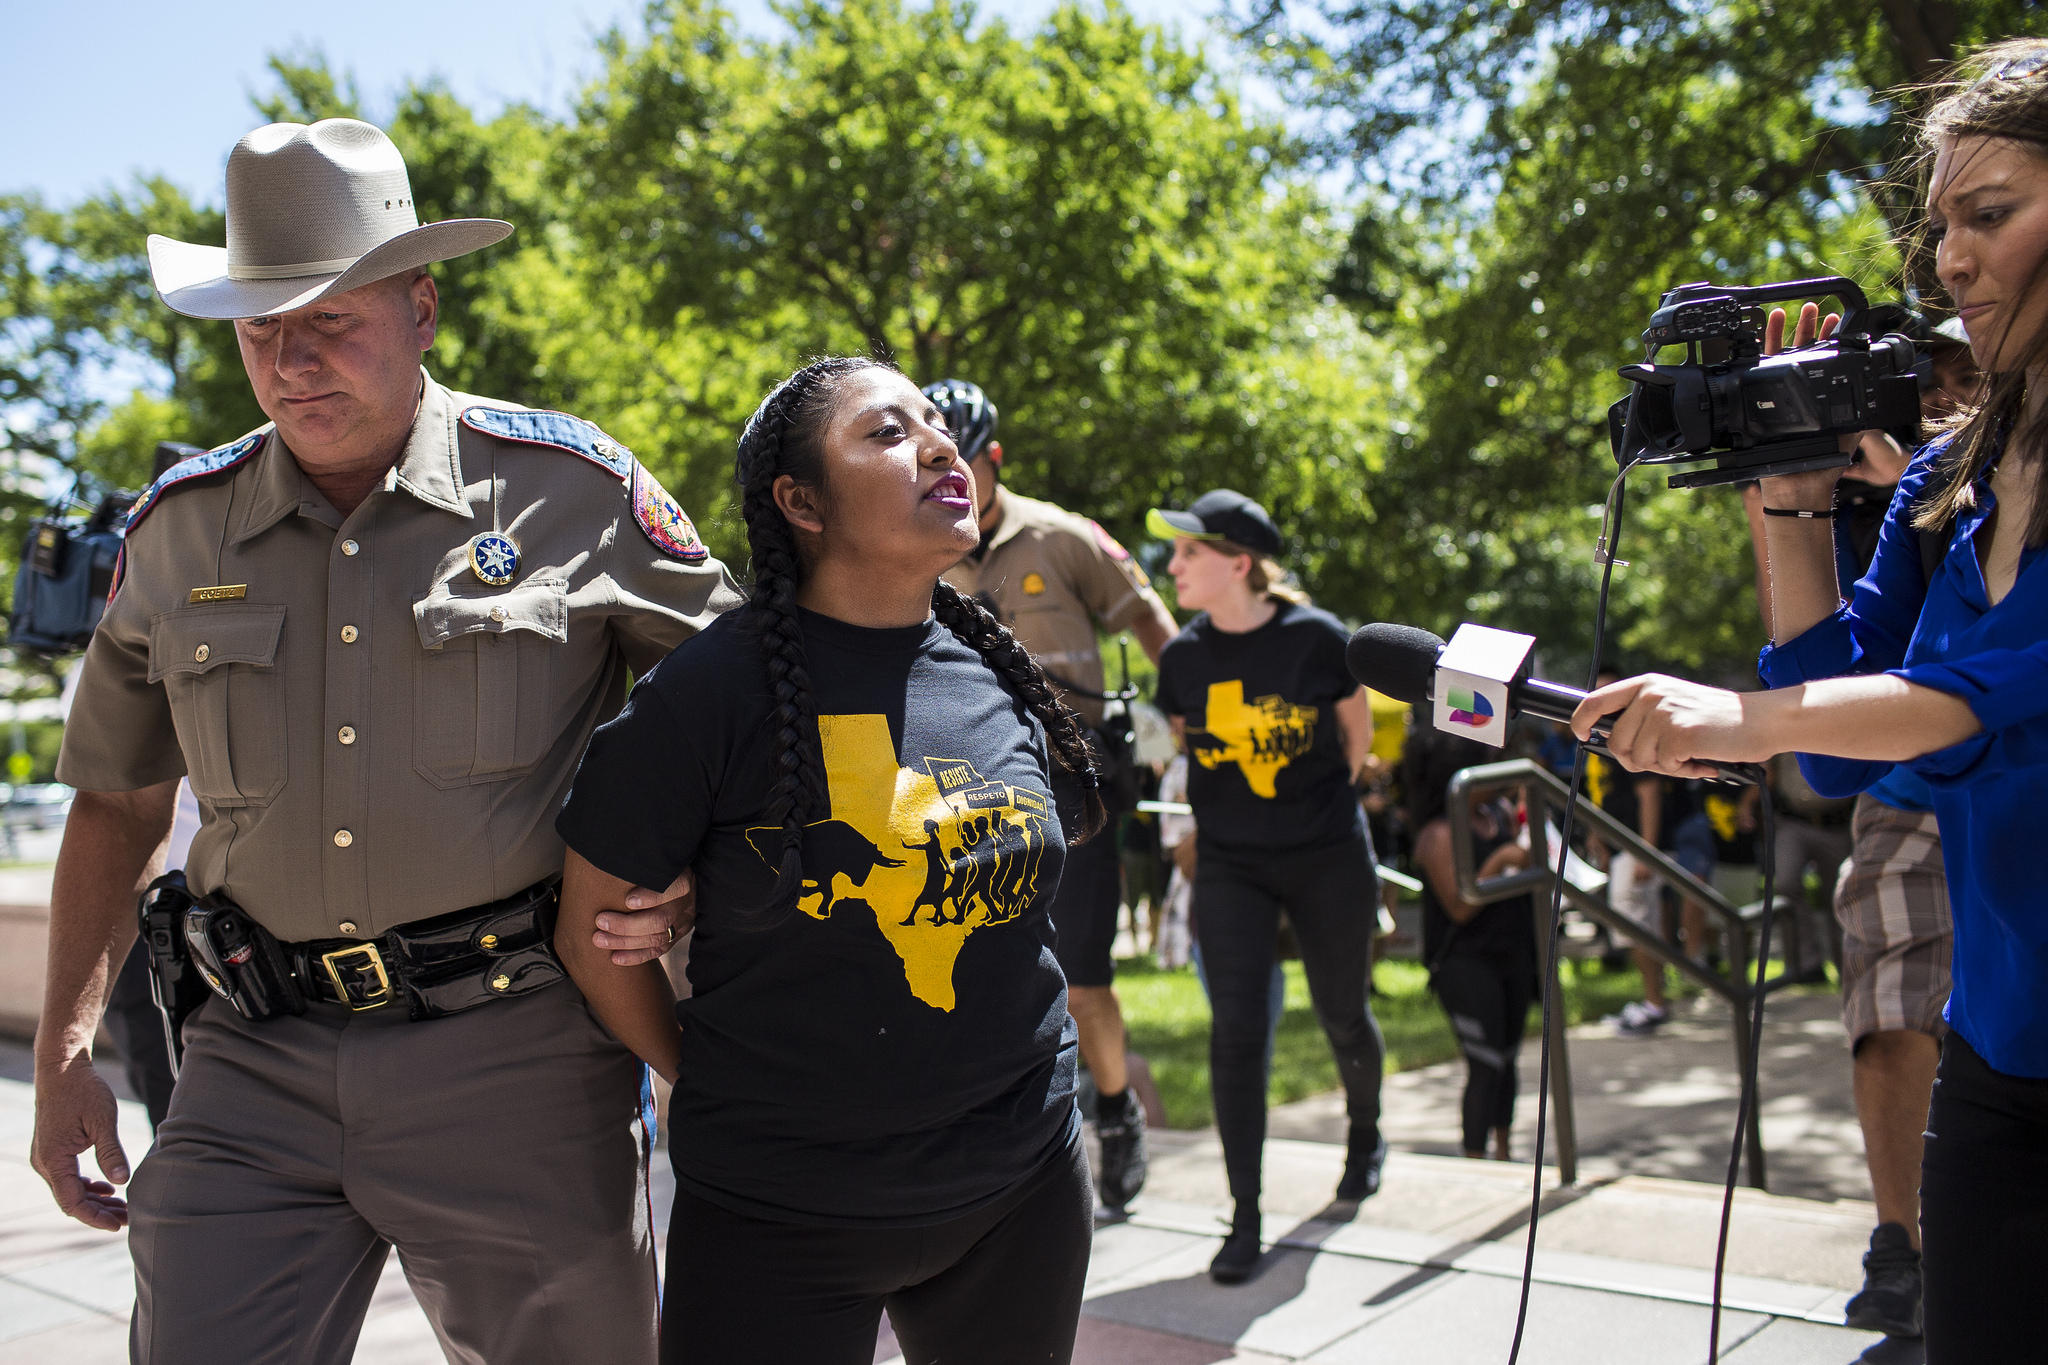 Undocumented Immigrants Arrested at DACA Protest in Texas